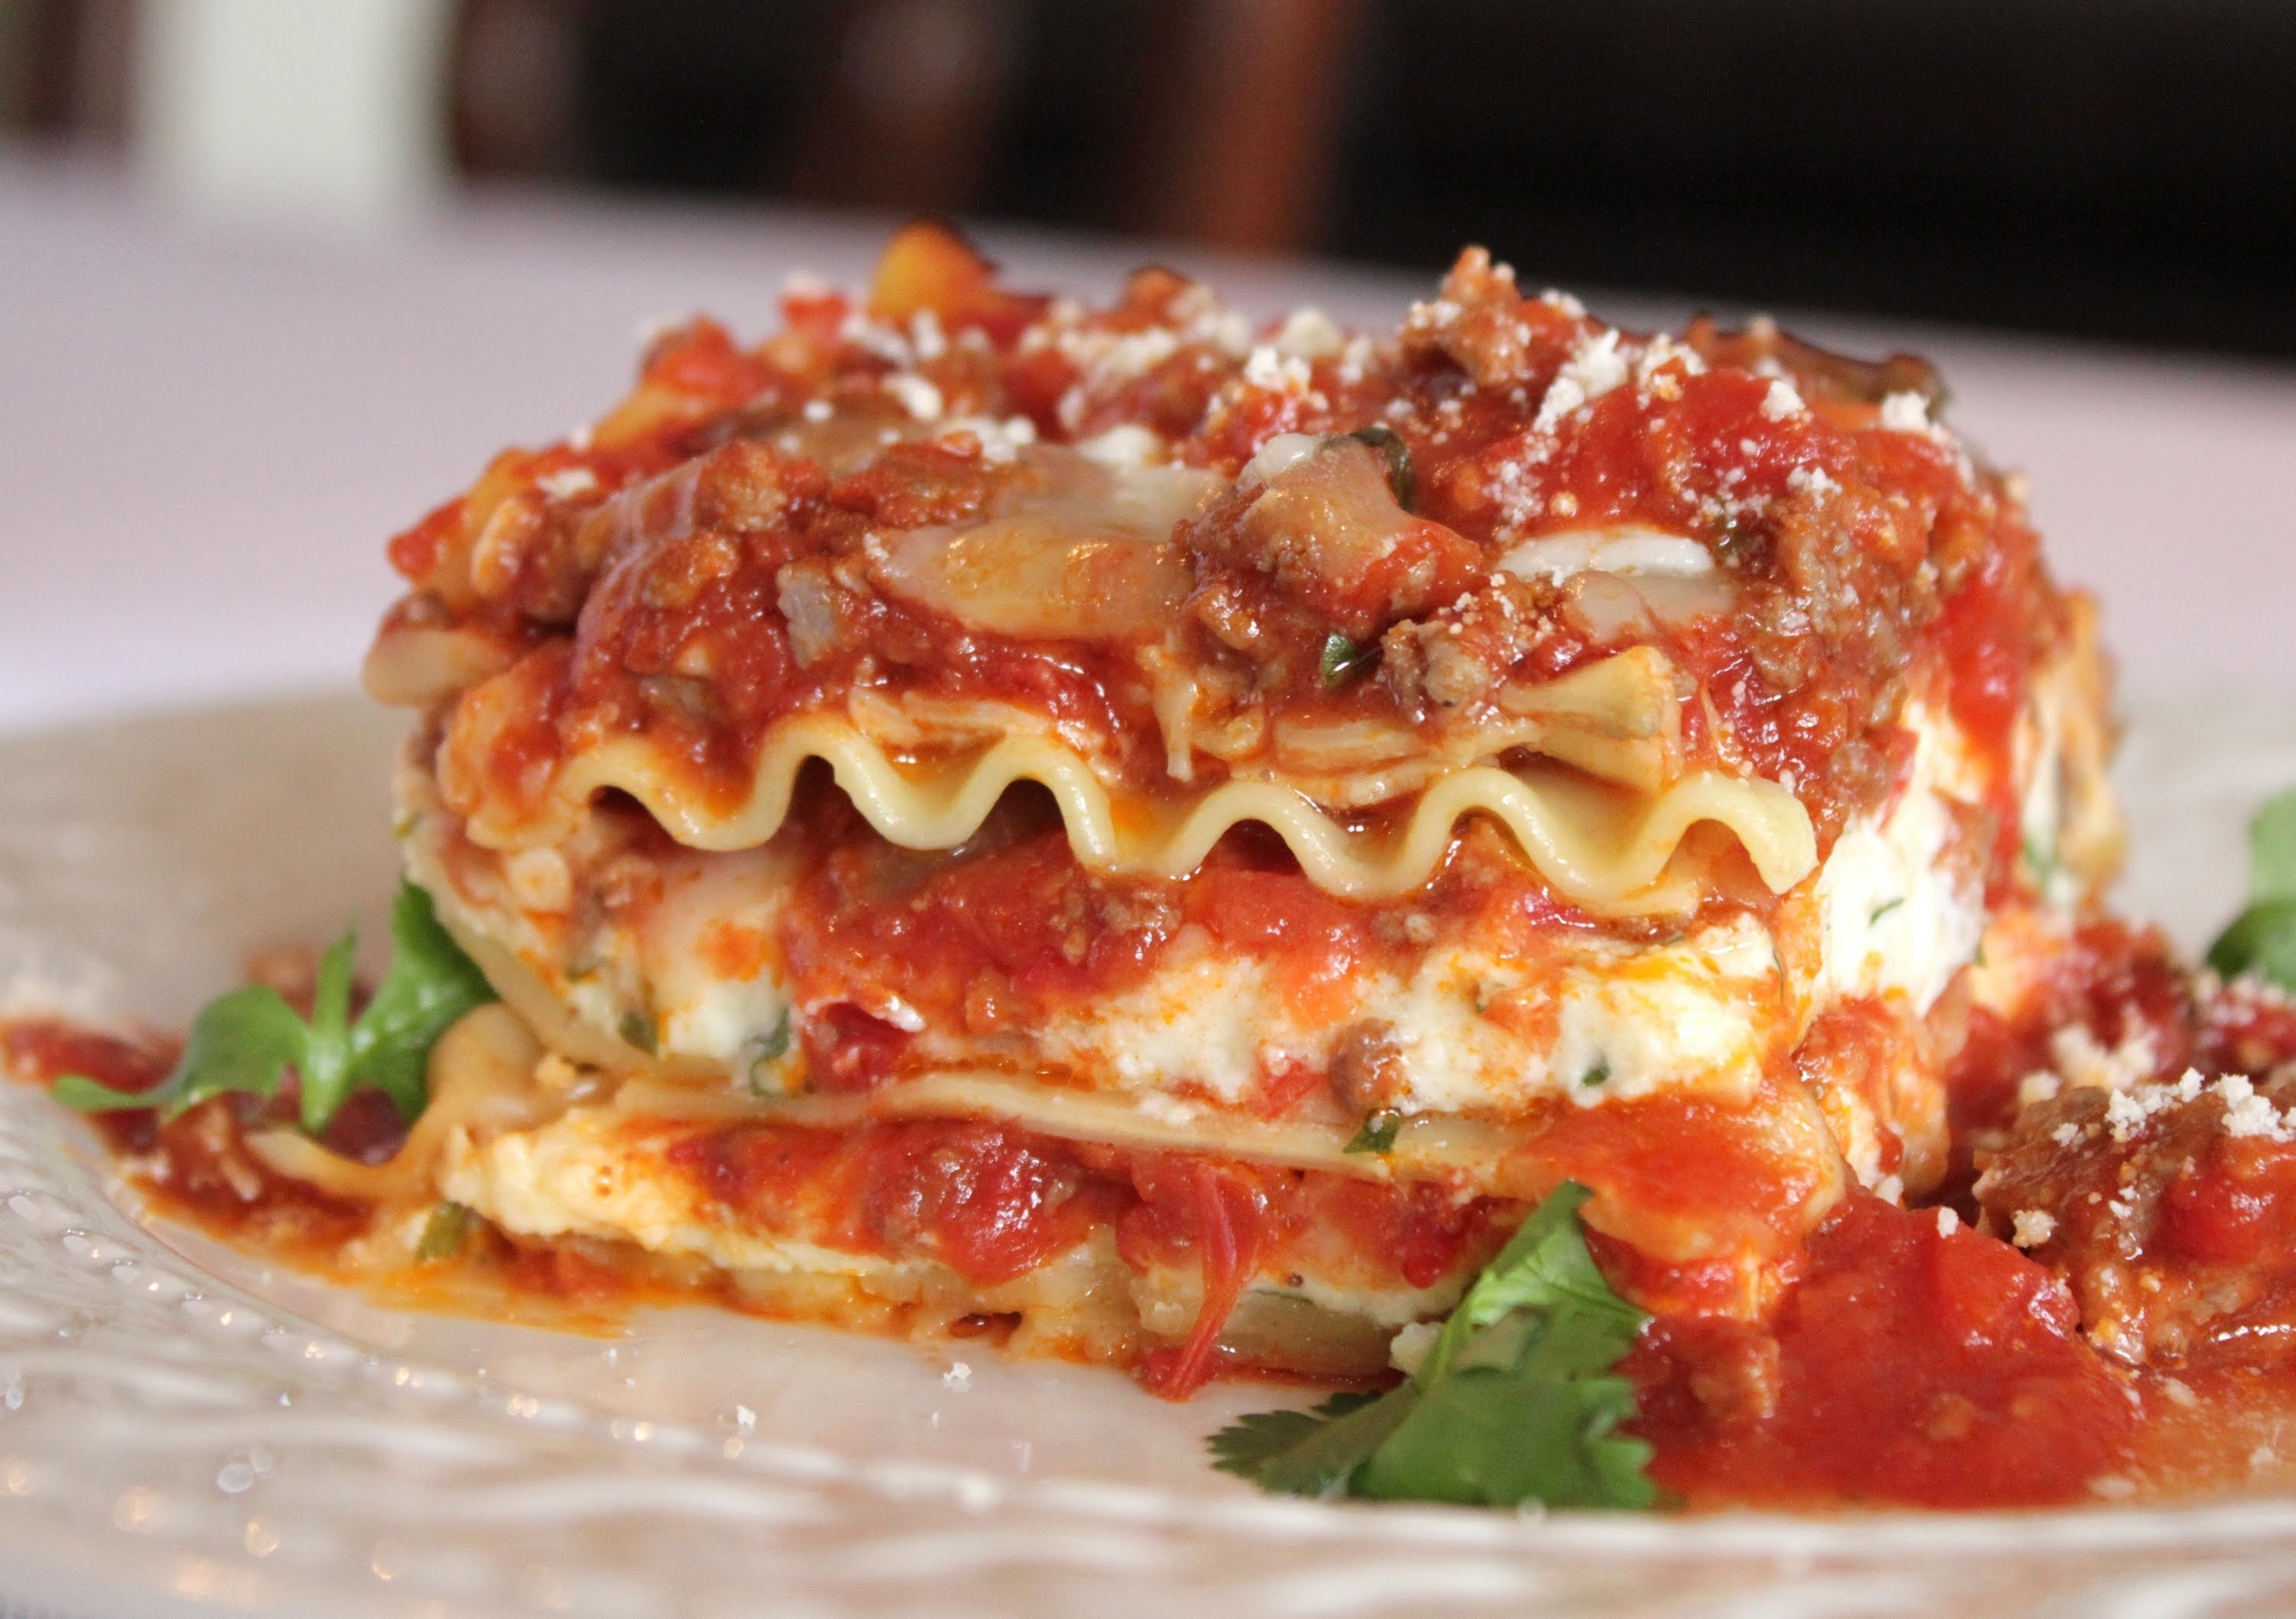 The Best Meat Lasagna Recipe -- How to Make Homemade Italian Lasagna Bolognese